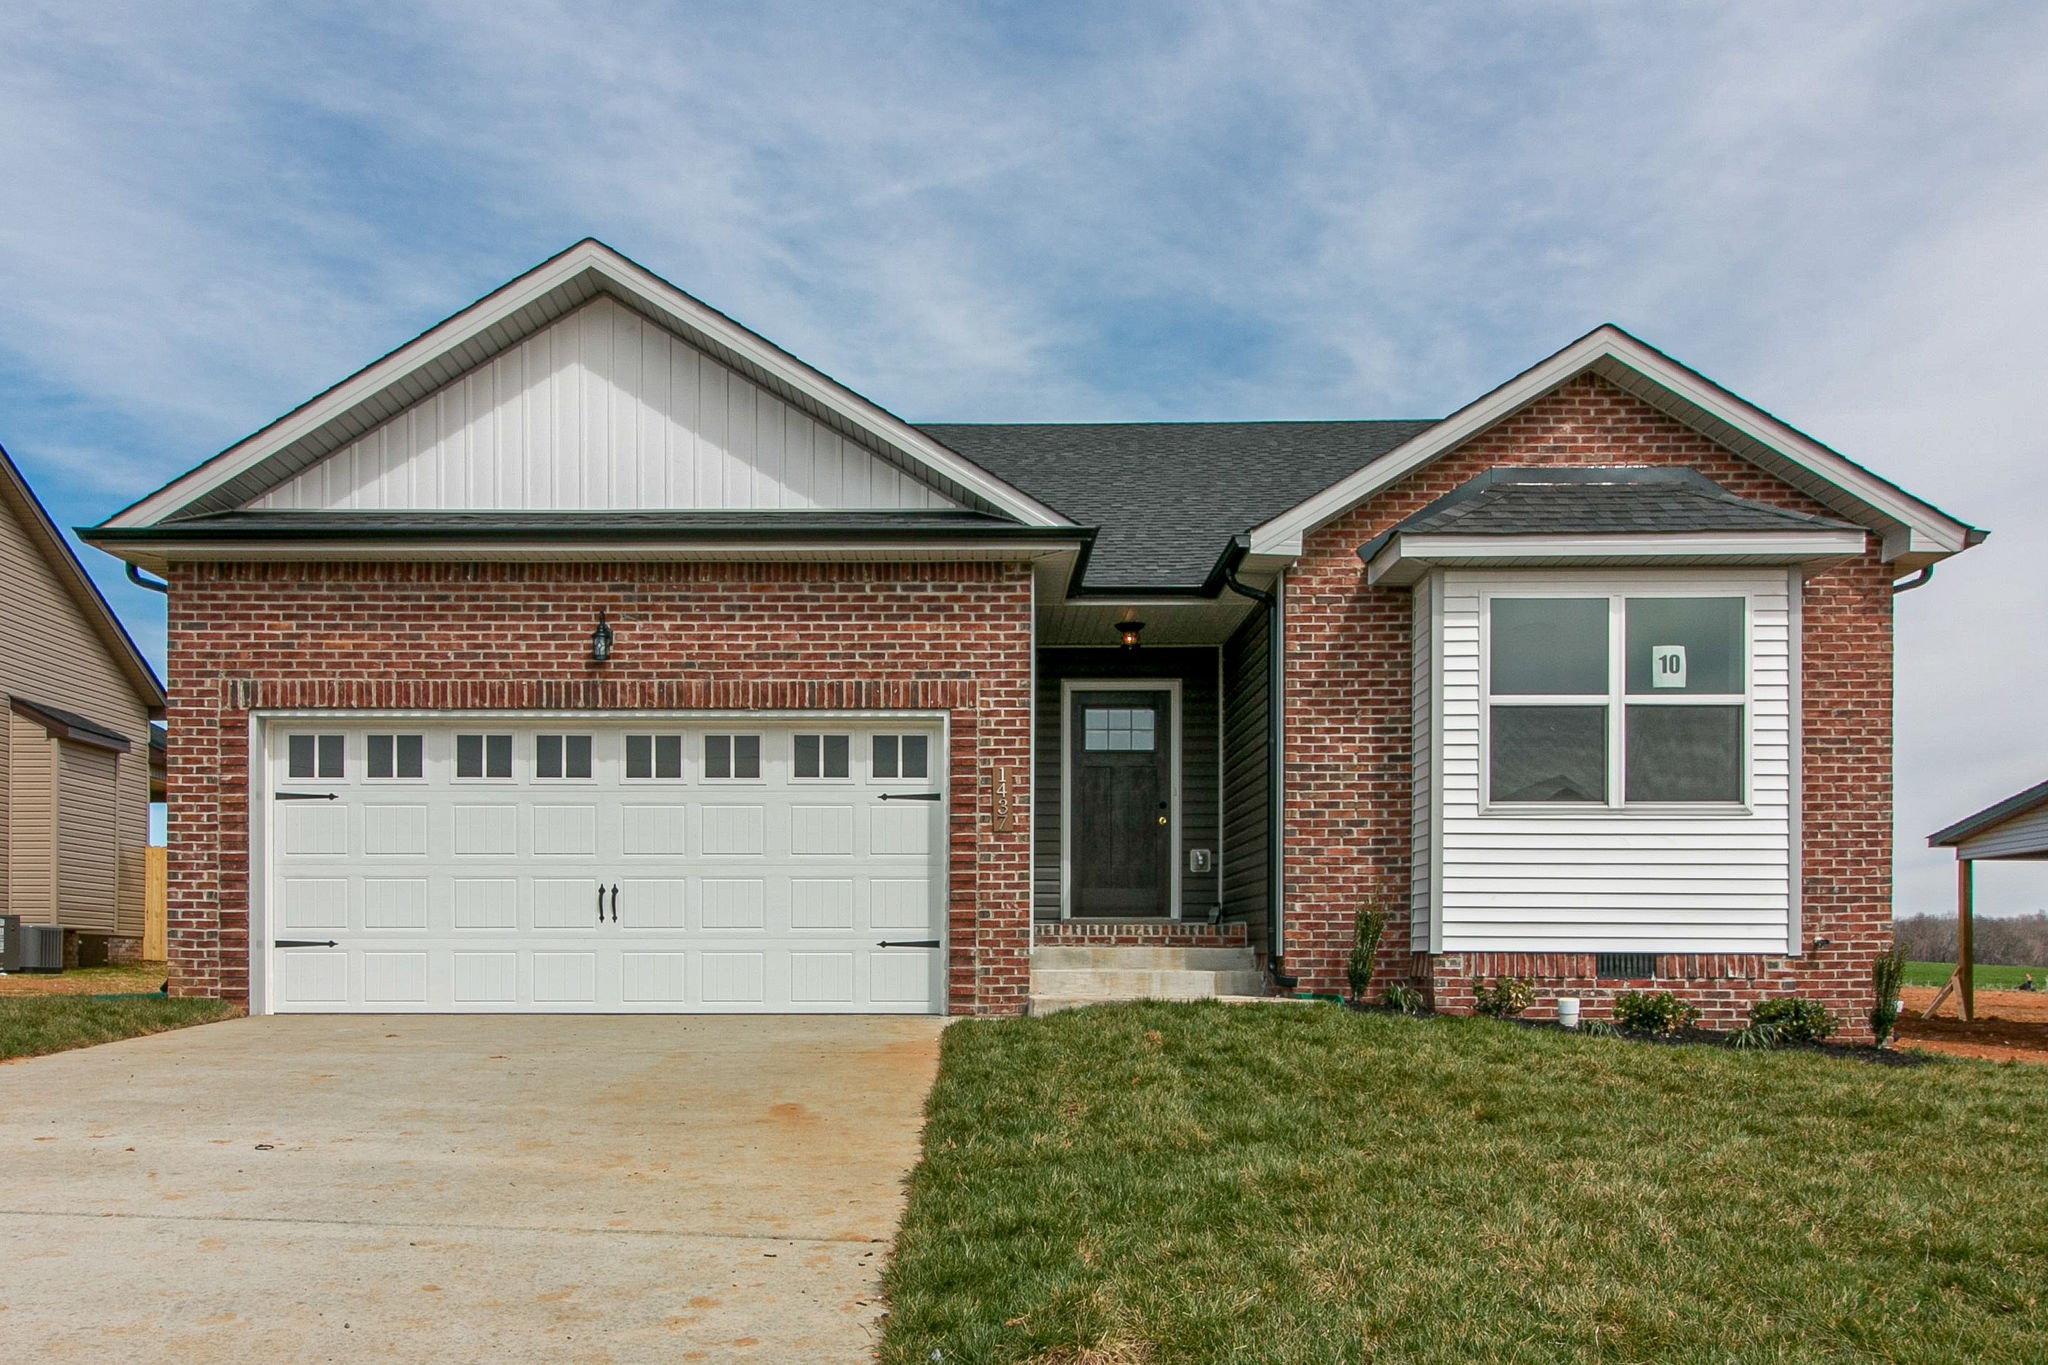 1437 Wild Fern Ln (Lot 10), Clarksville, TN 37042 - Clarksville, TN real estate listing